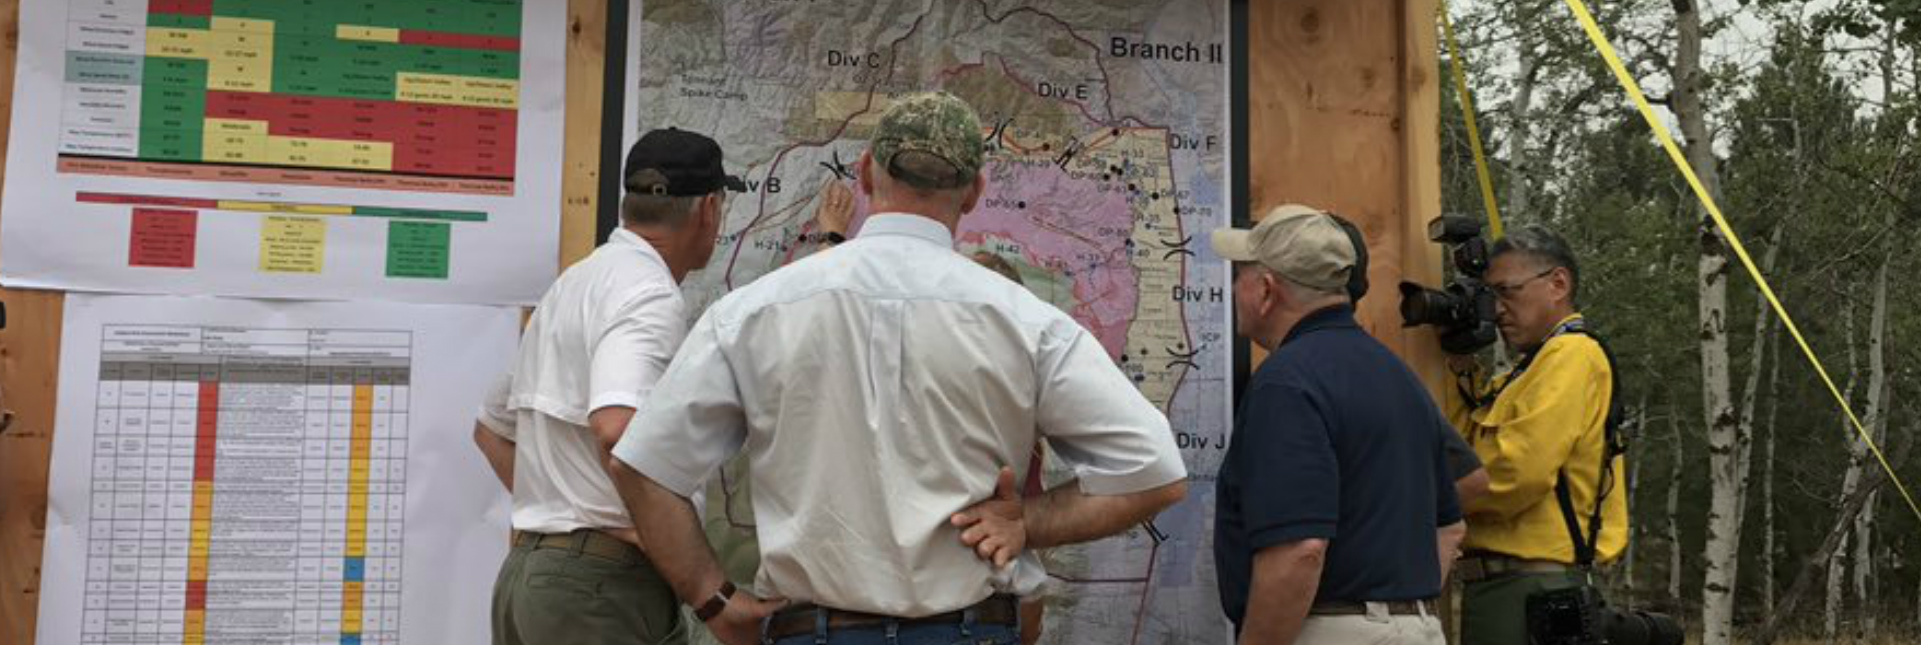 Three men in white men in polo shirts and ballcaps look at a large map pinned to a wooden board in the forest.